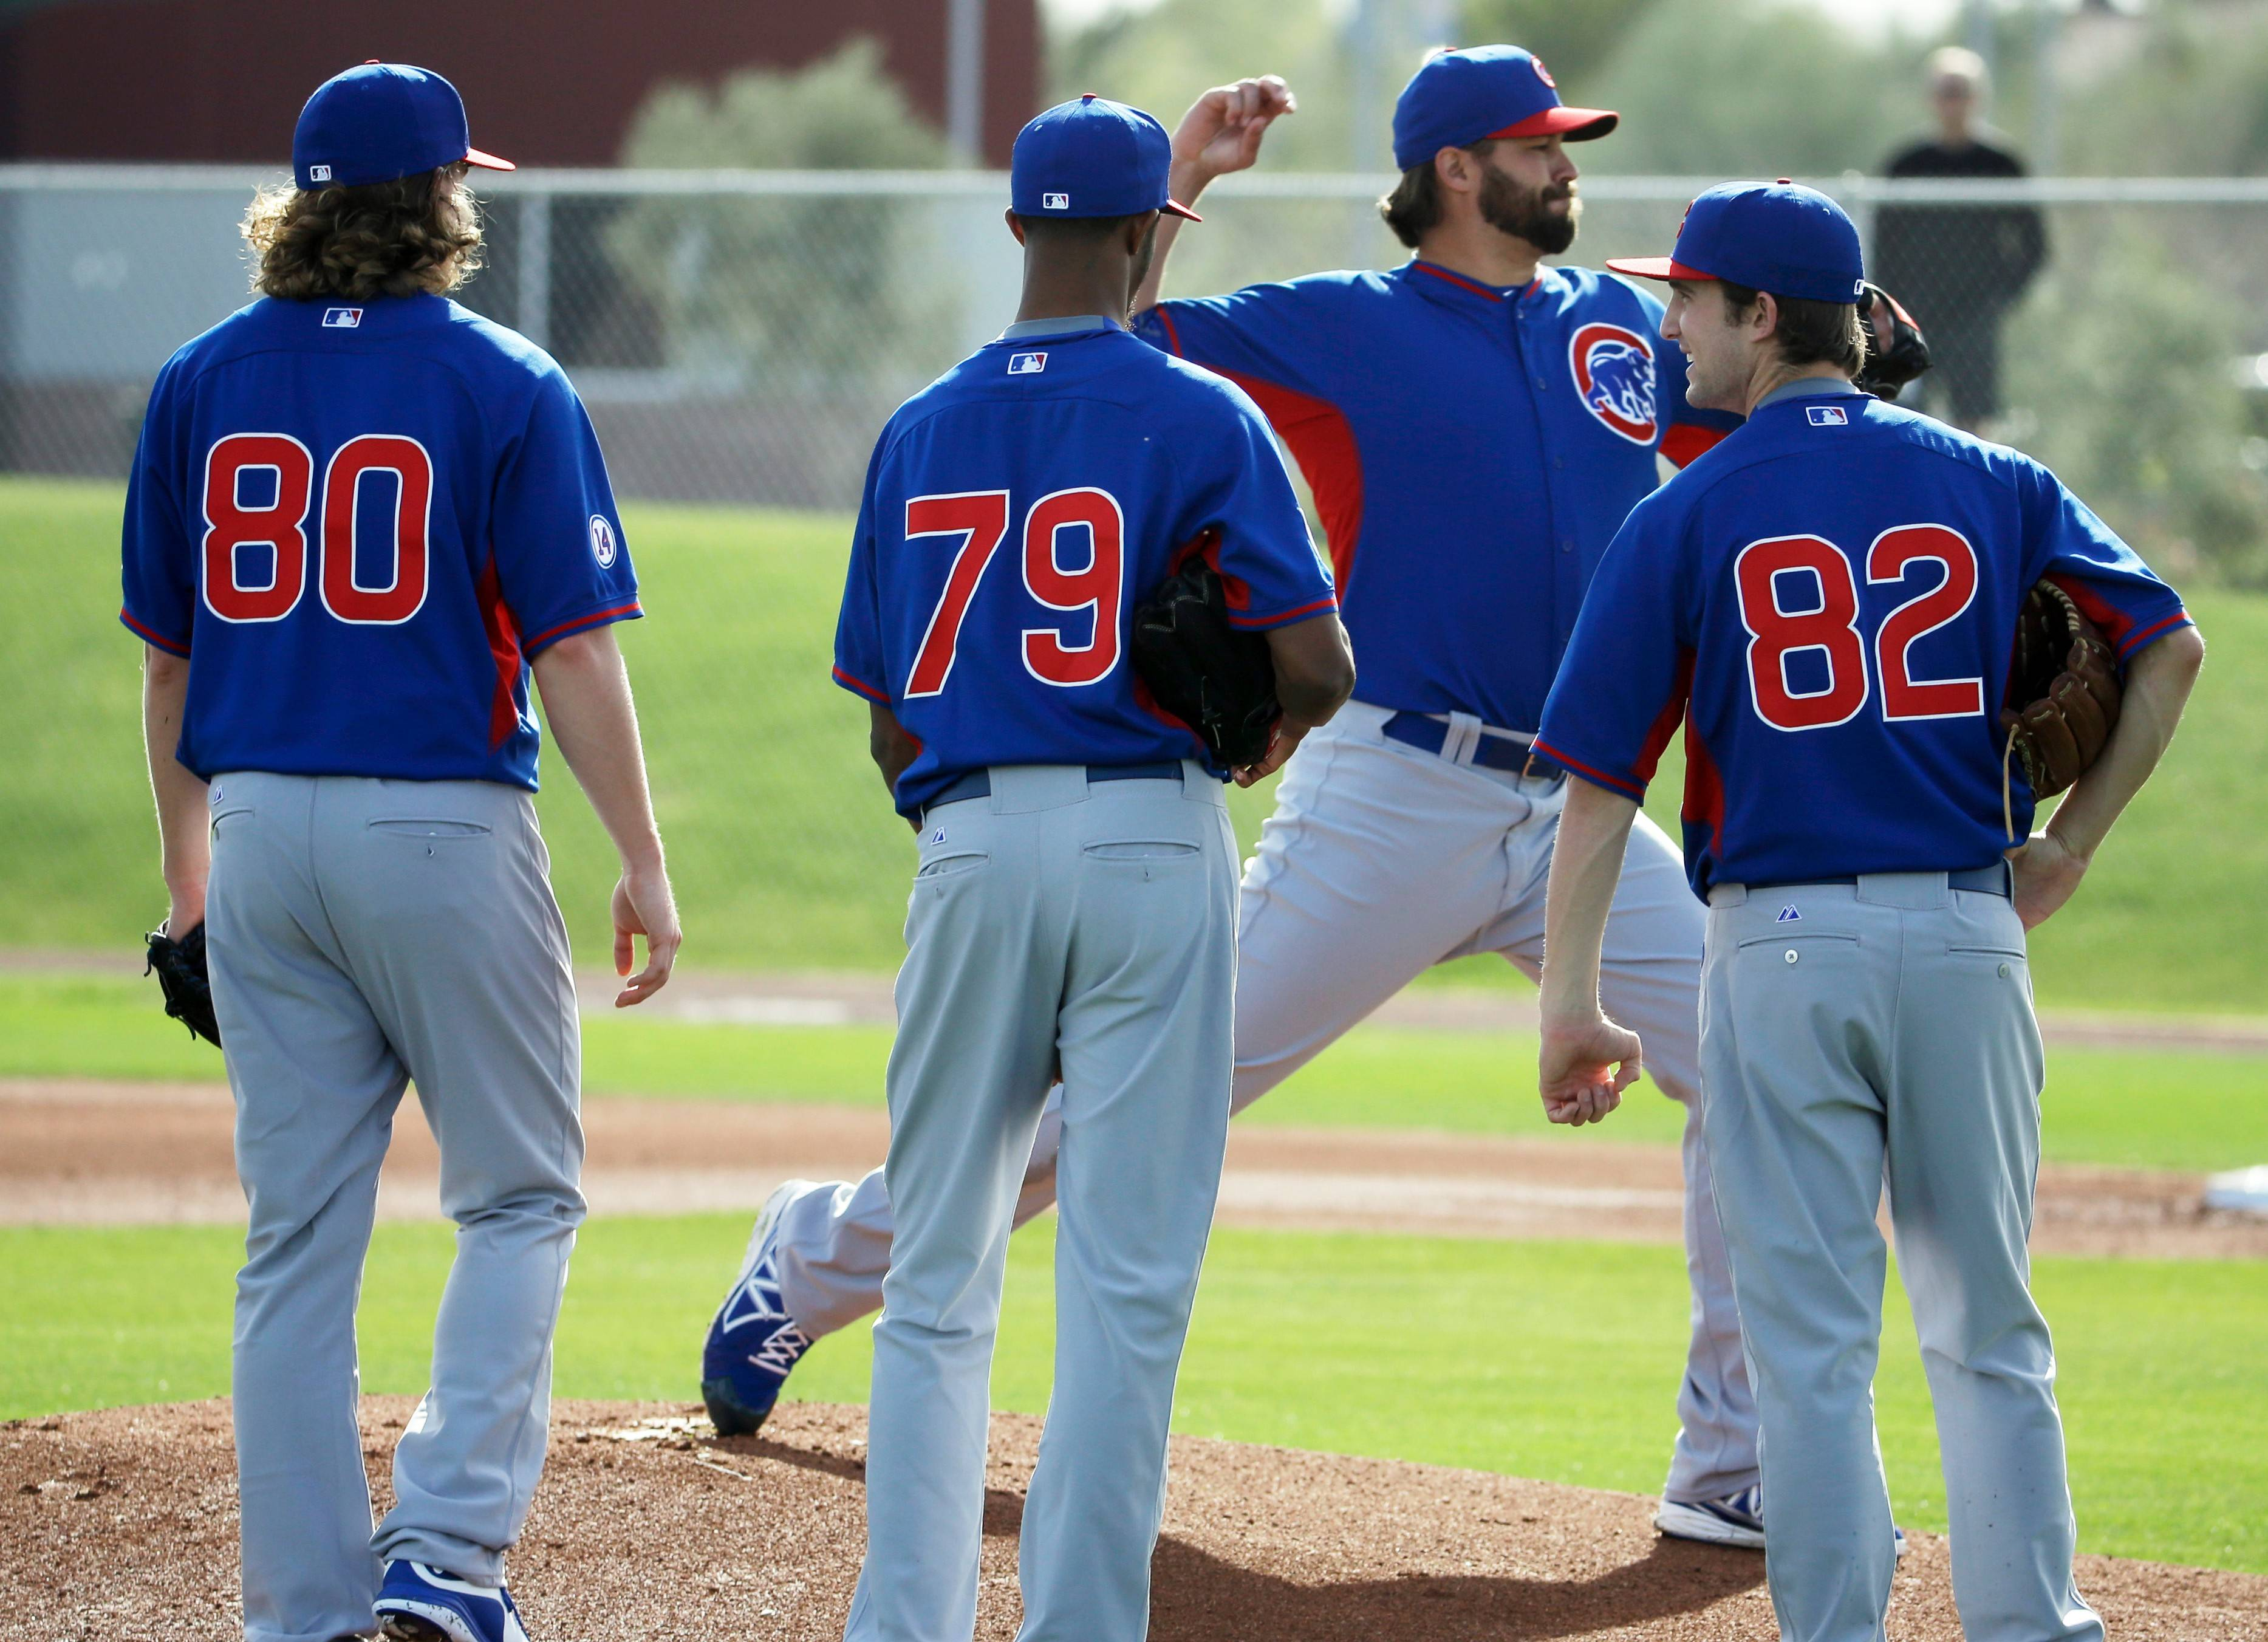 Teammates watch as Chicago Cubs Anthony Carter simulates a throw from the mound during a spring training baseball workout Saturday, Feb. 21, 2015, in Mesa, Ariz.